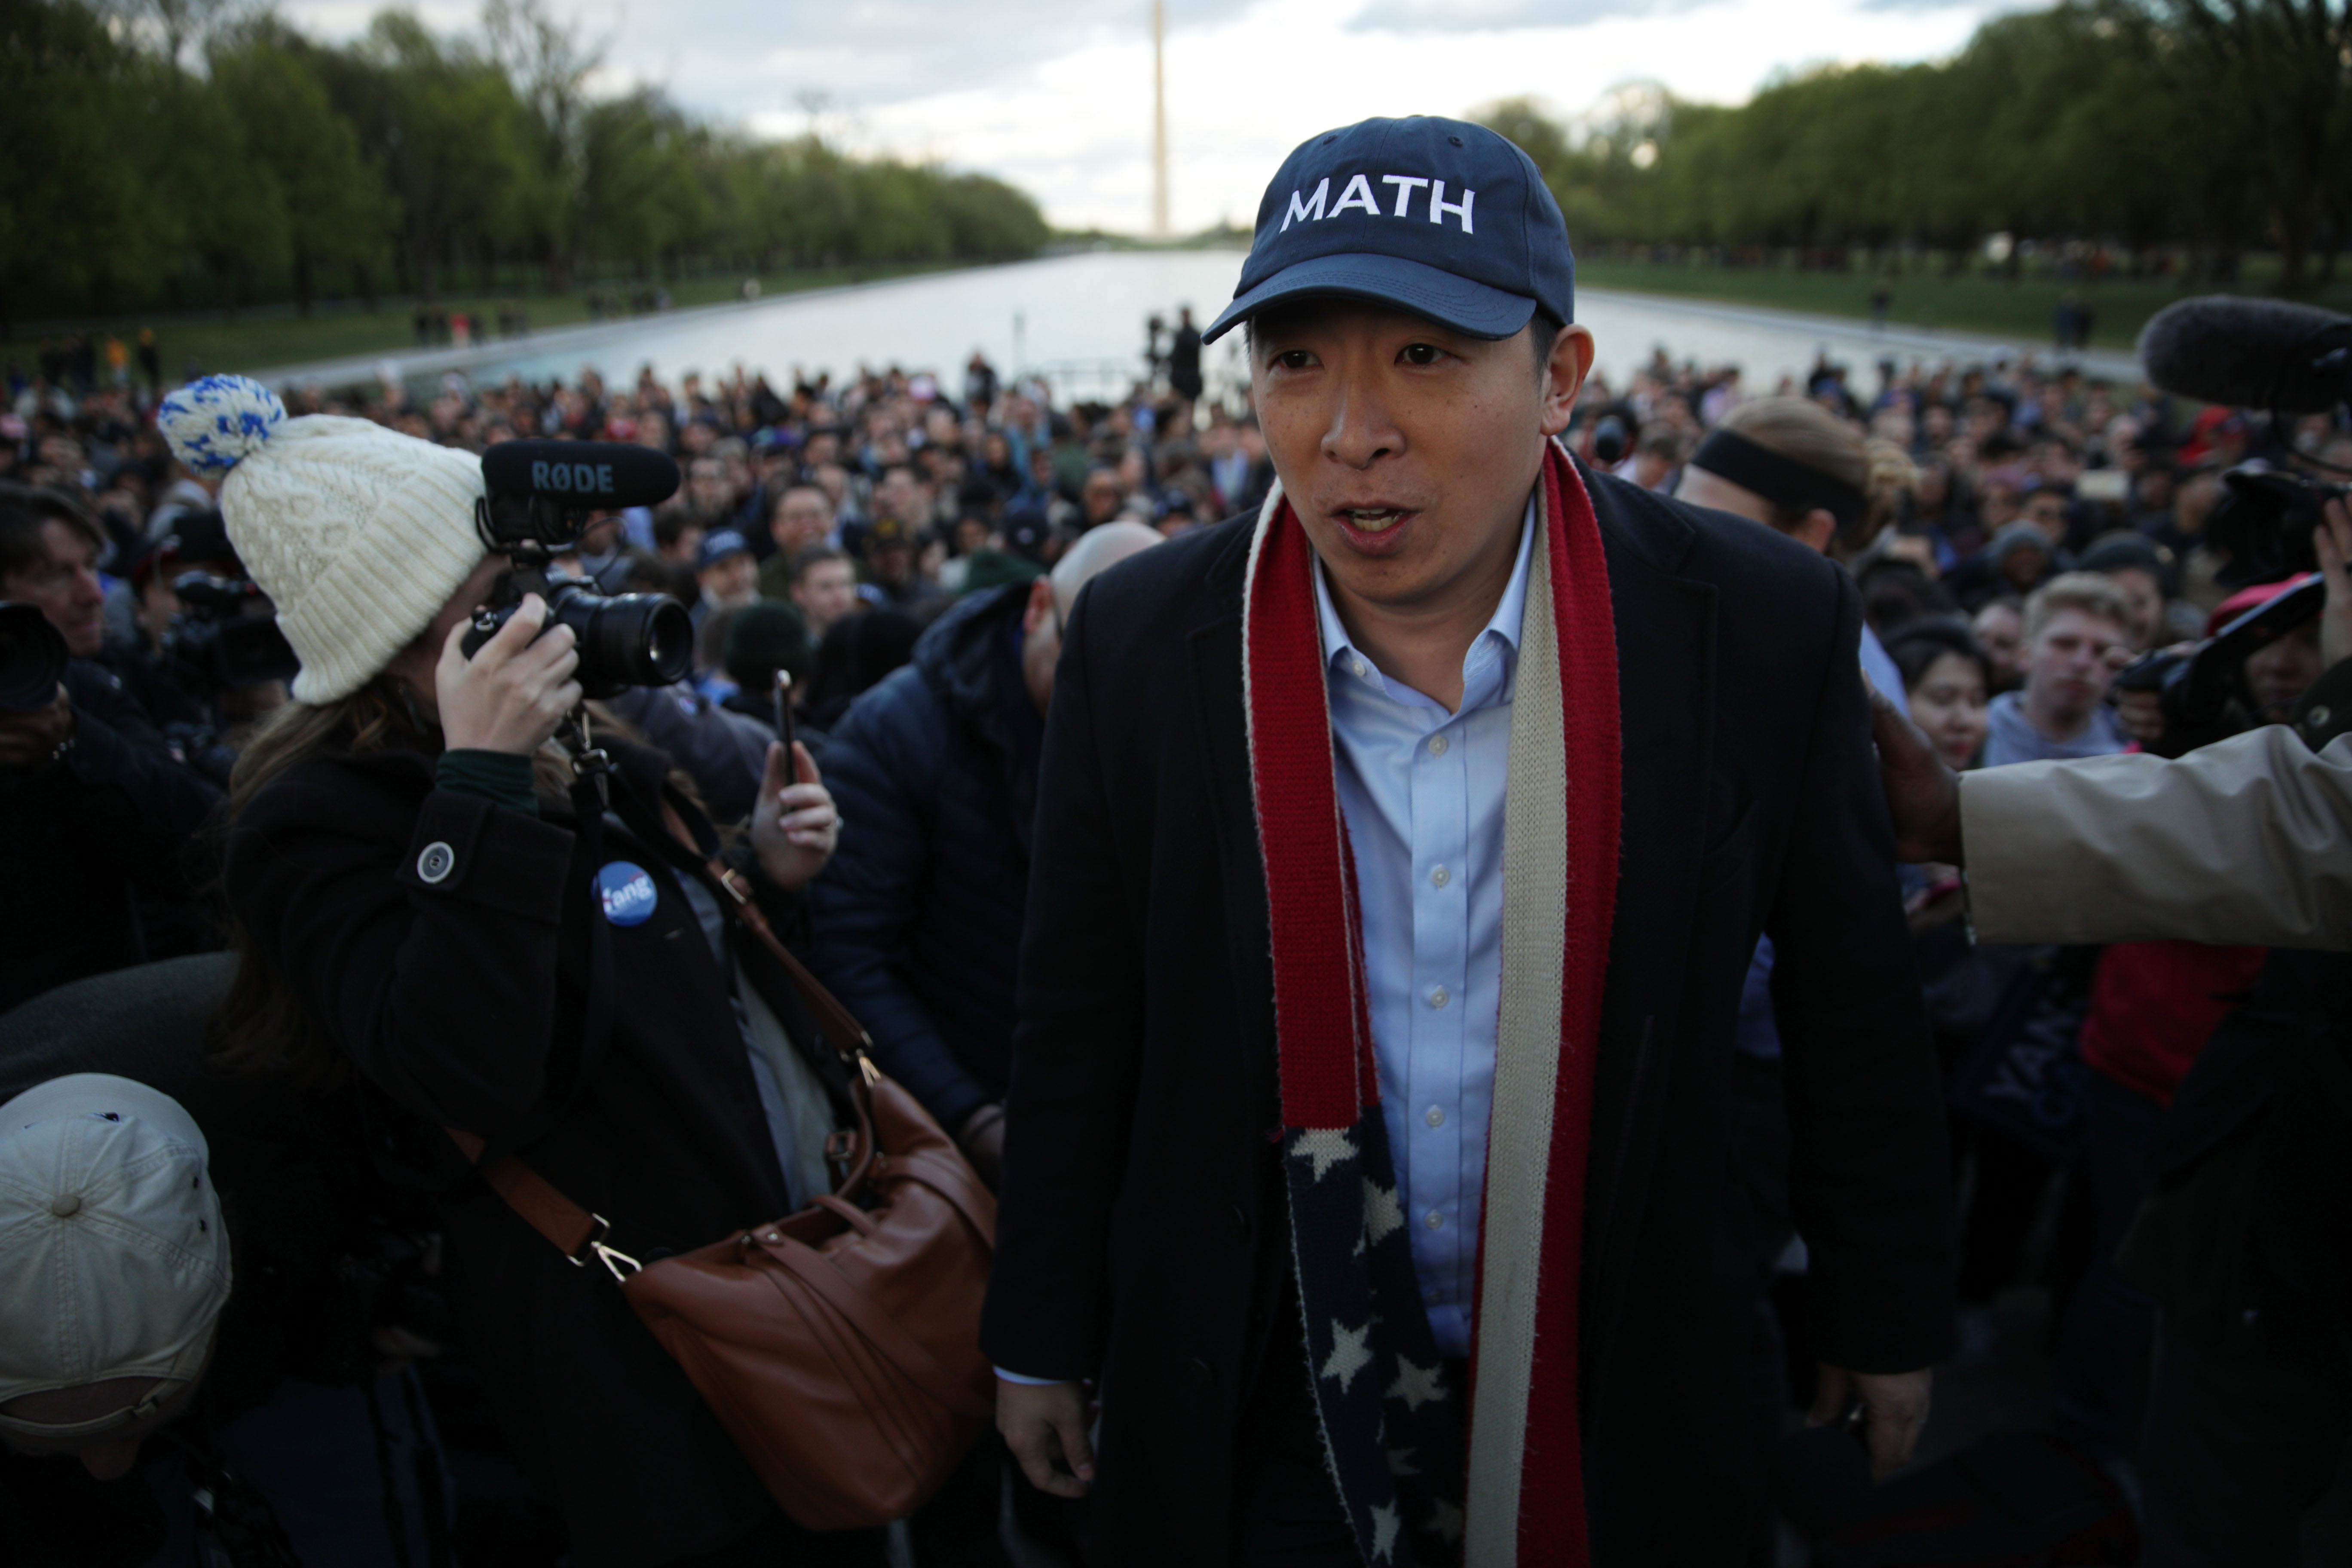 APRIL 15: Democratic U.S. presidential hopeful Andrew Yang hosts a campaign rally at the Lincoln Memorial April 15, 2019 in Washington, DC. One of Yang's major campaign promises is a universal basic income proposal to give every American 18 years and older $1,000 every month. (Photo by Alex Wong/Getty Images)